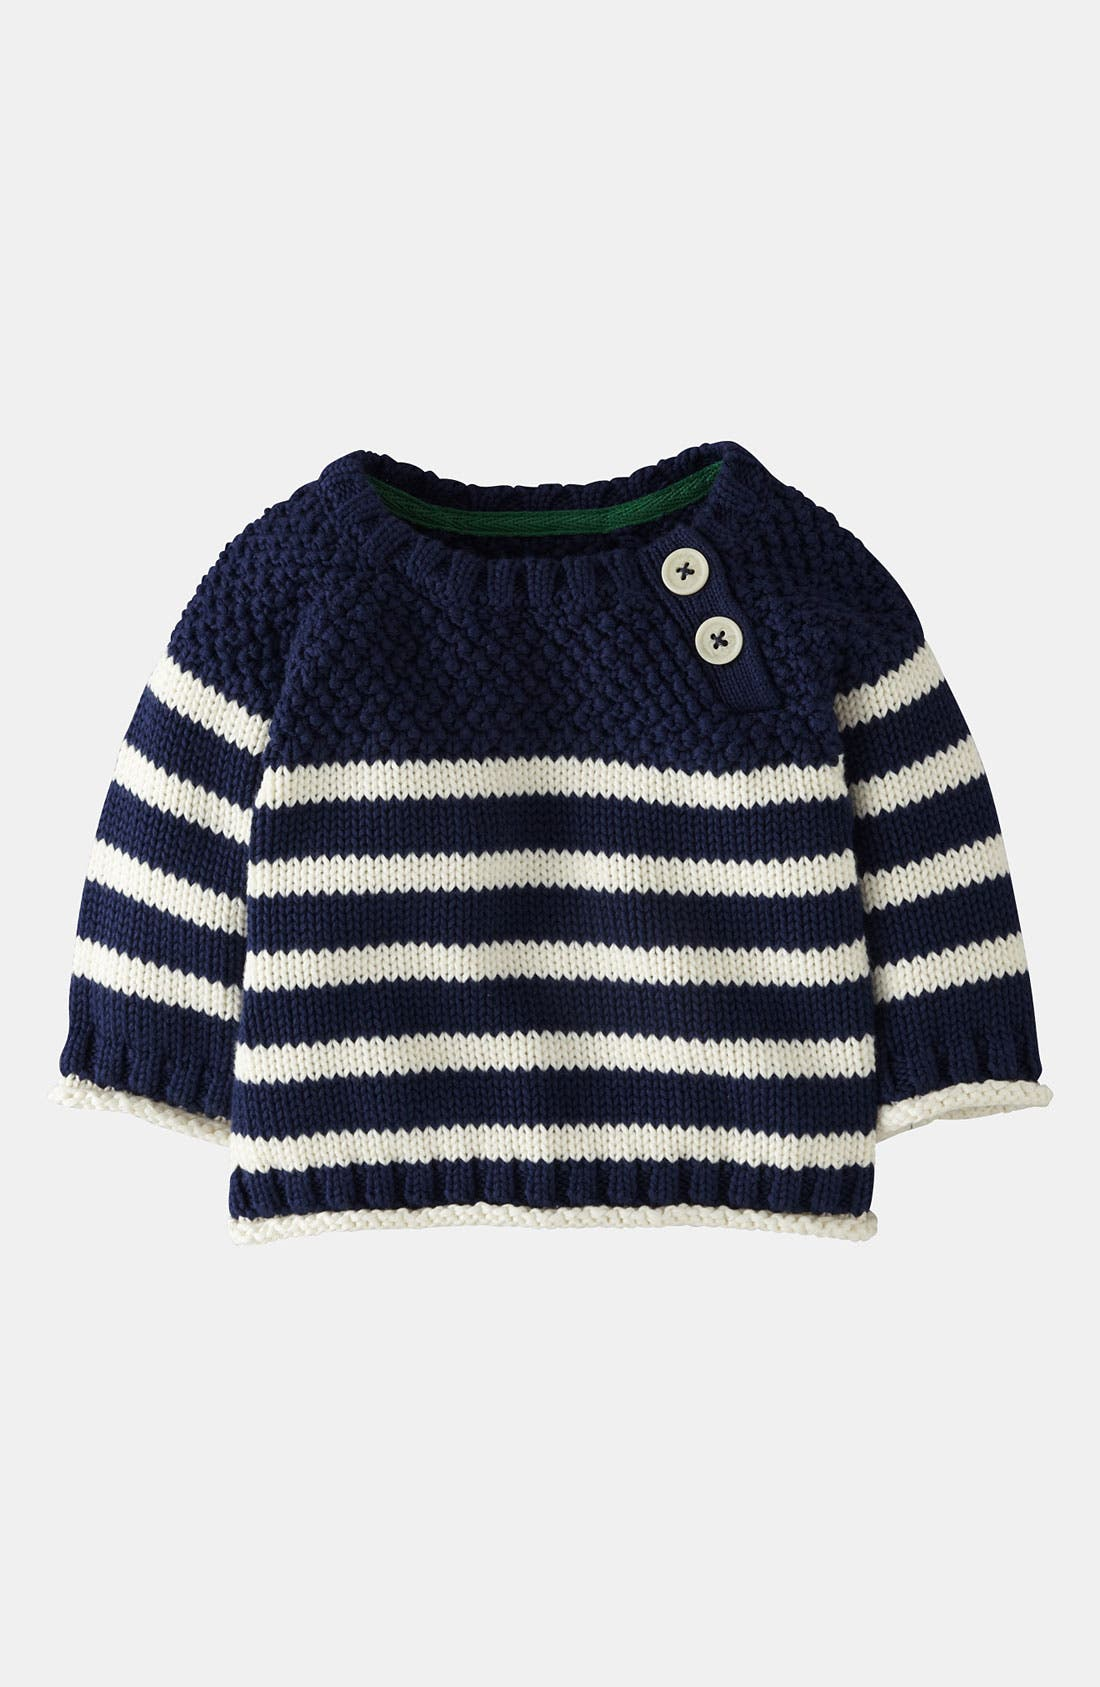 Main Image - Mini Boden Knit Sweater (Baby)